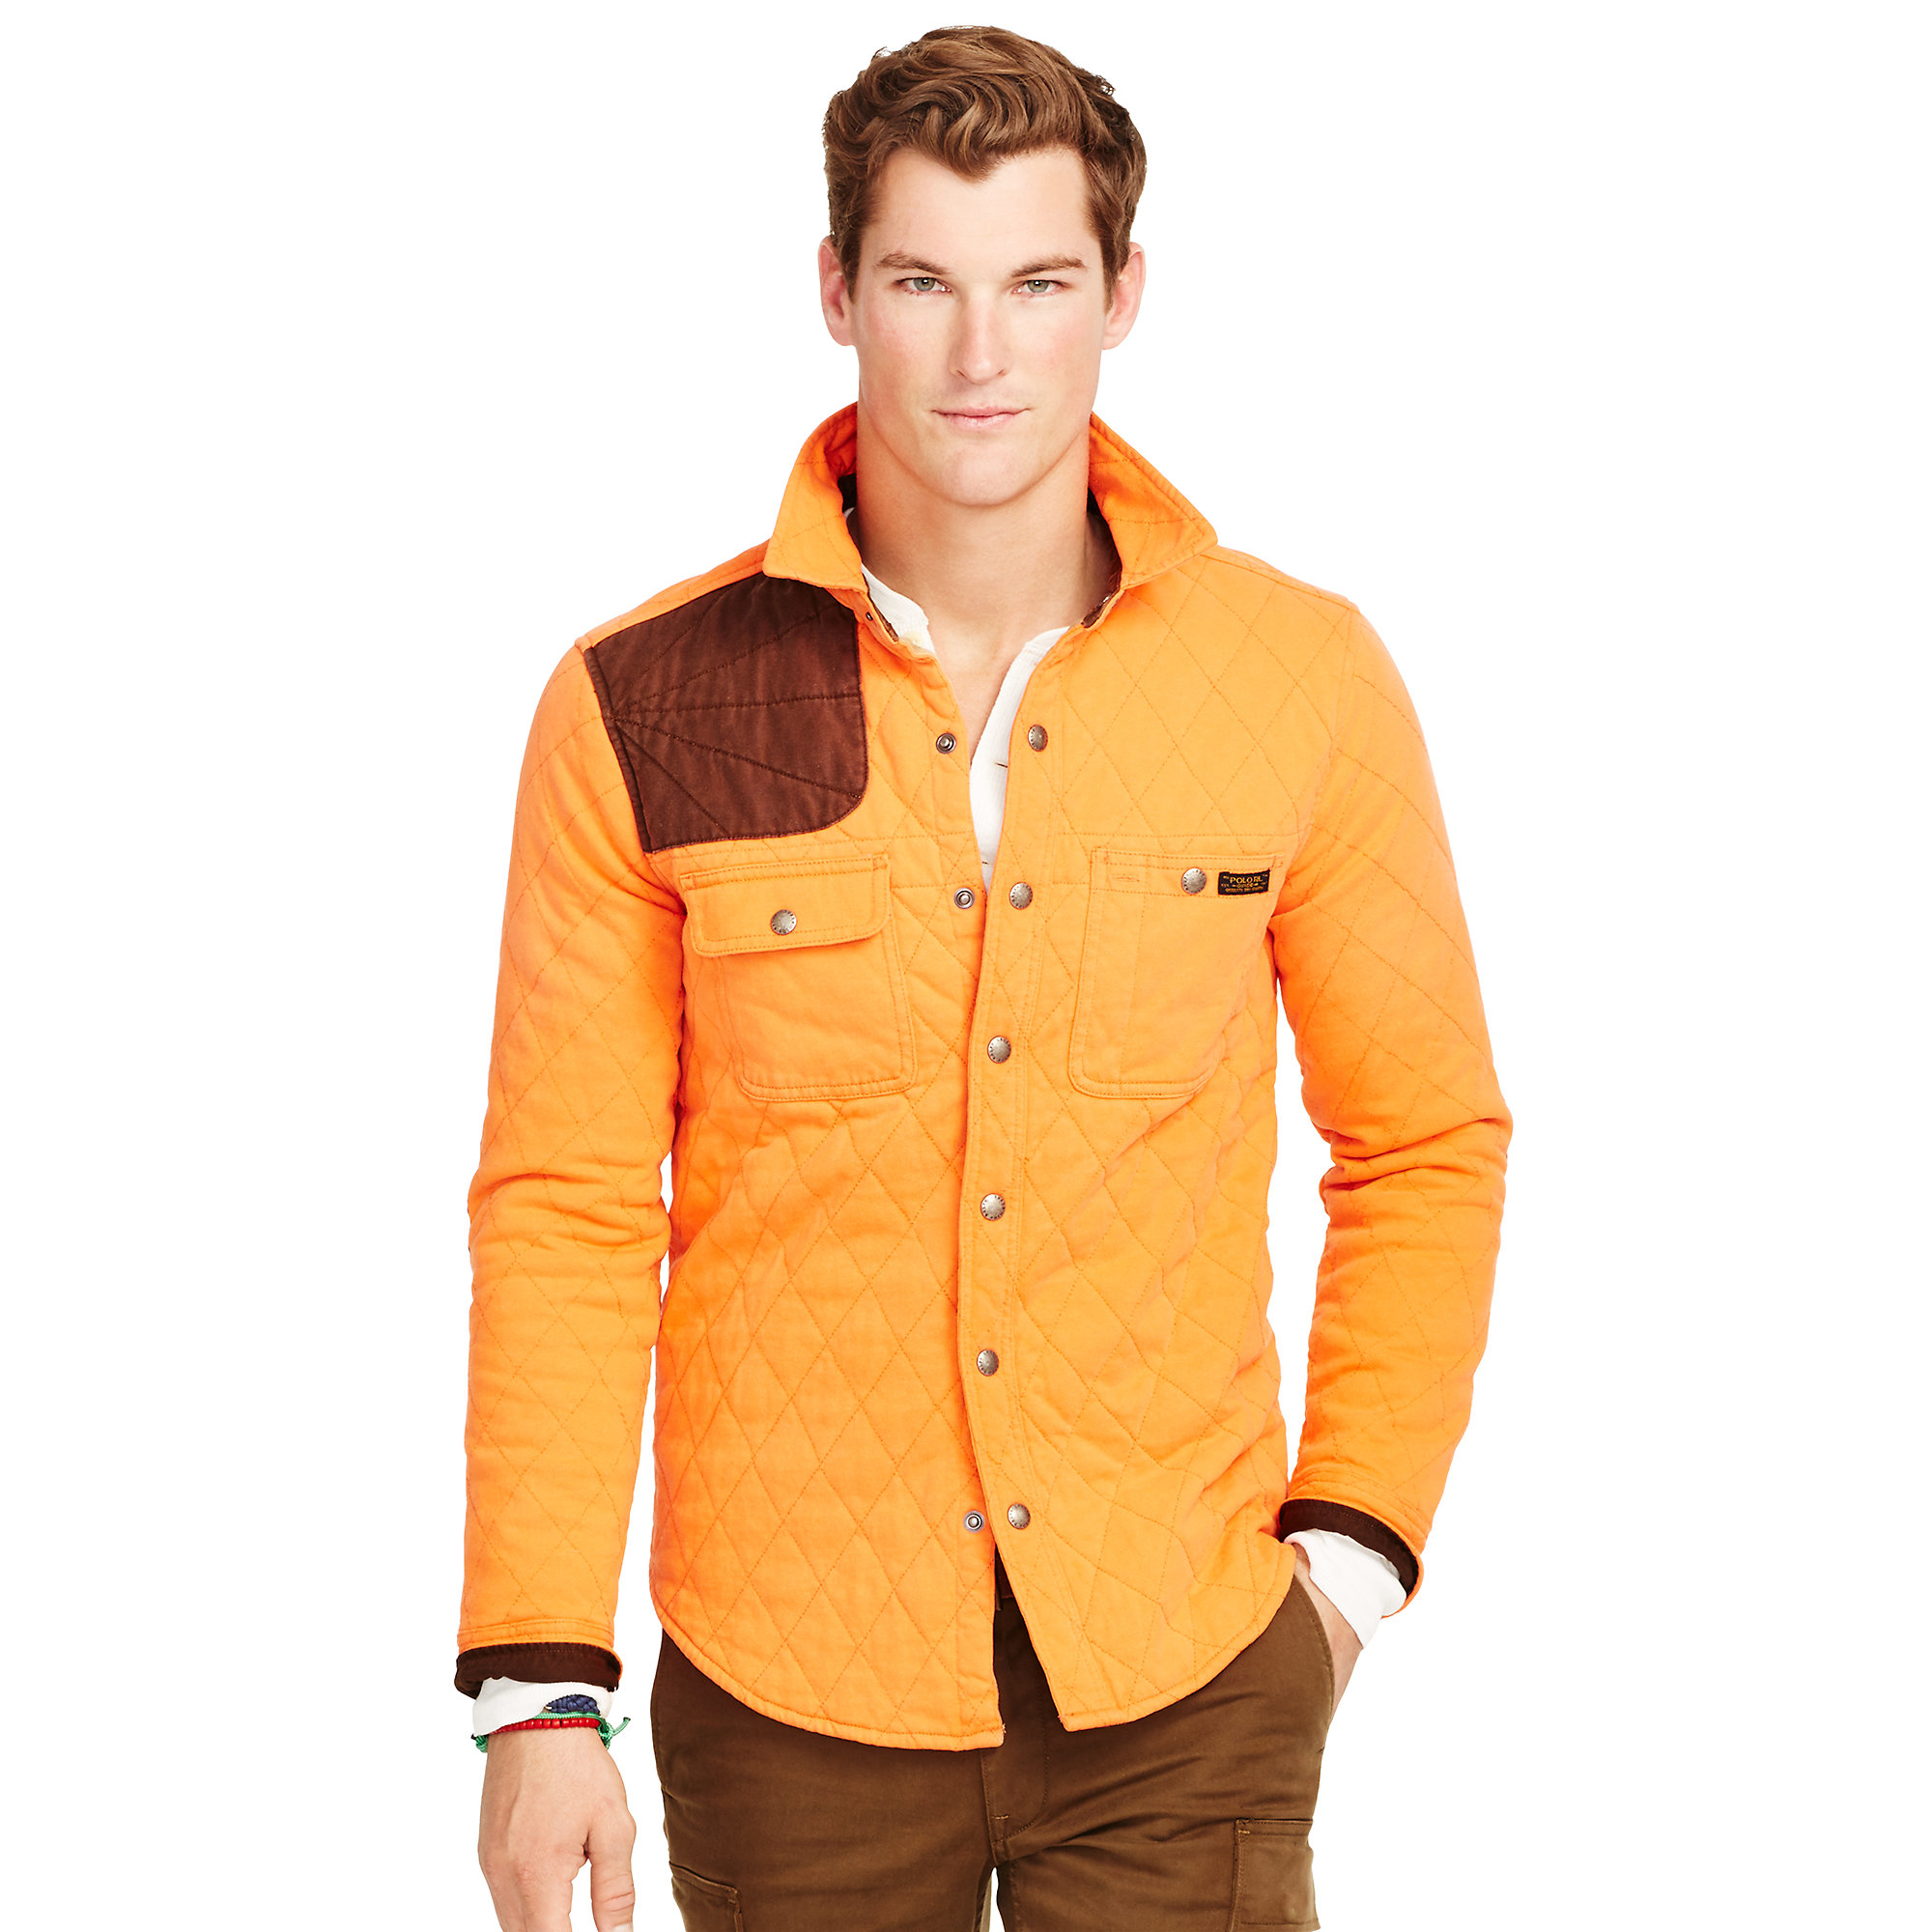 Lyst polo ralph lauren quilted utility shirt jacket in for Polo shirt with jacket